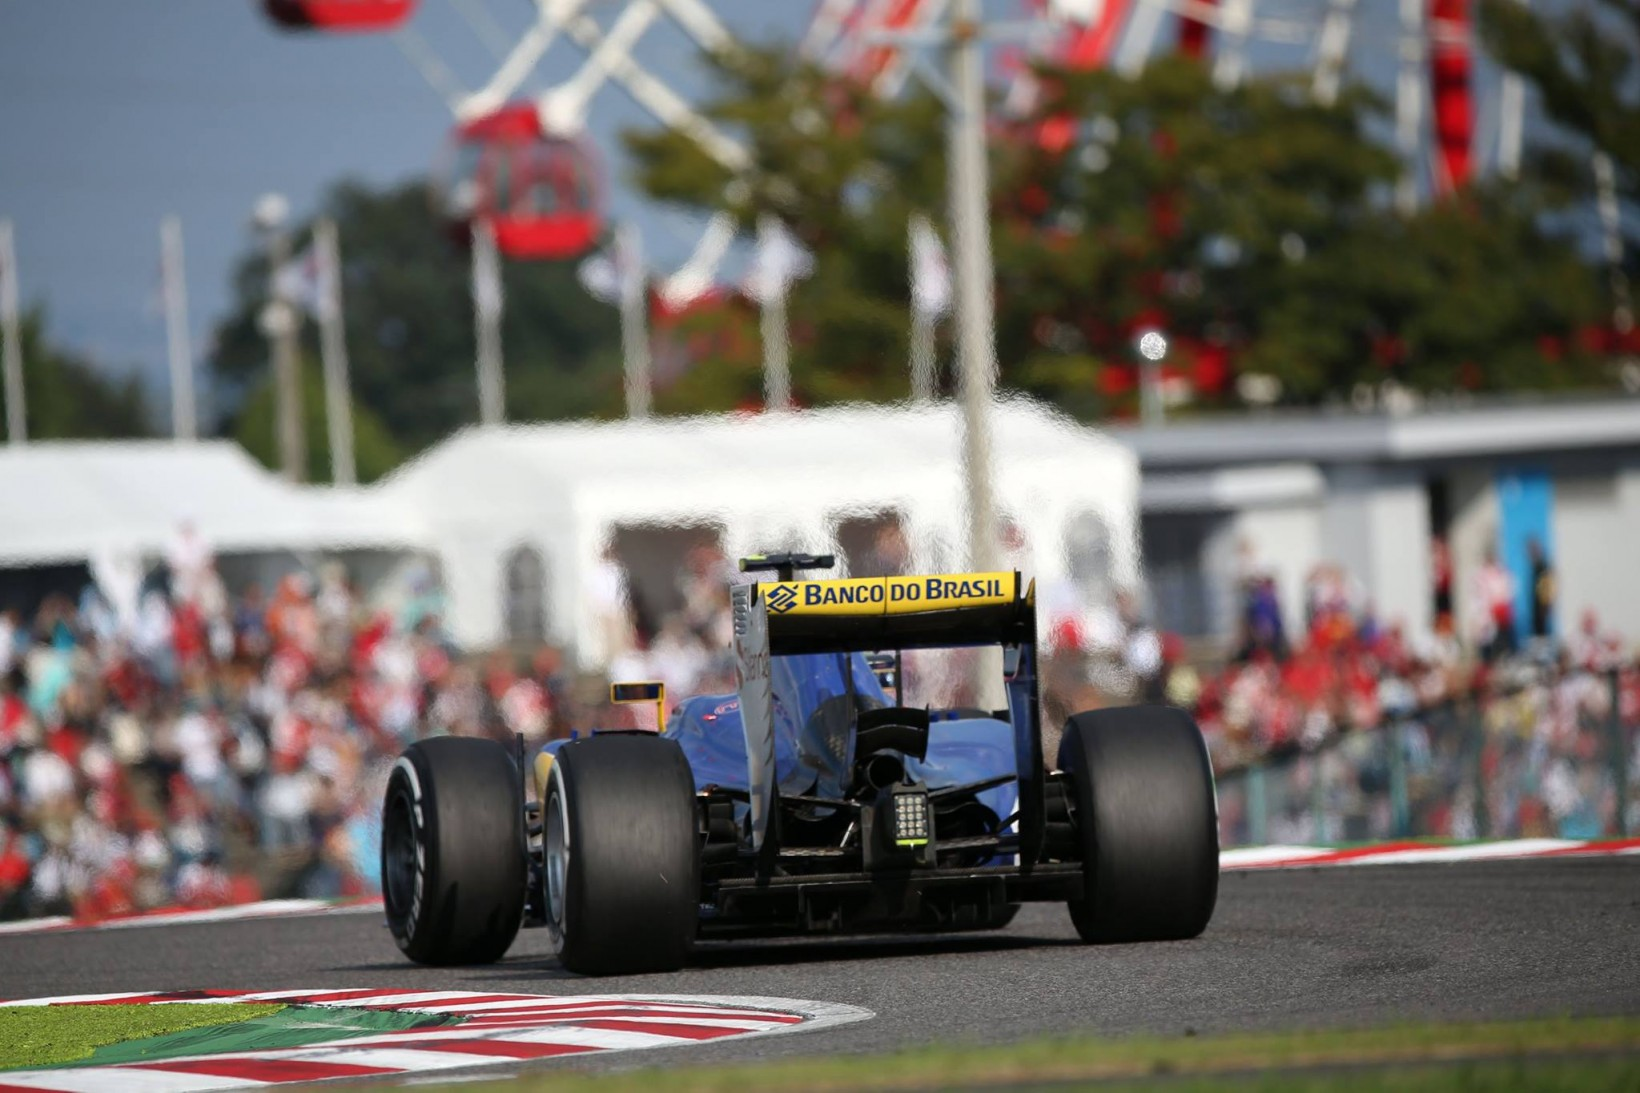 Sauber in Suzuka. Copyright: Sauber